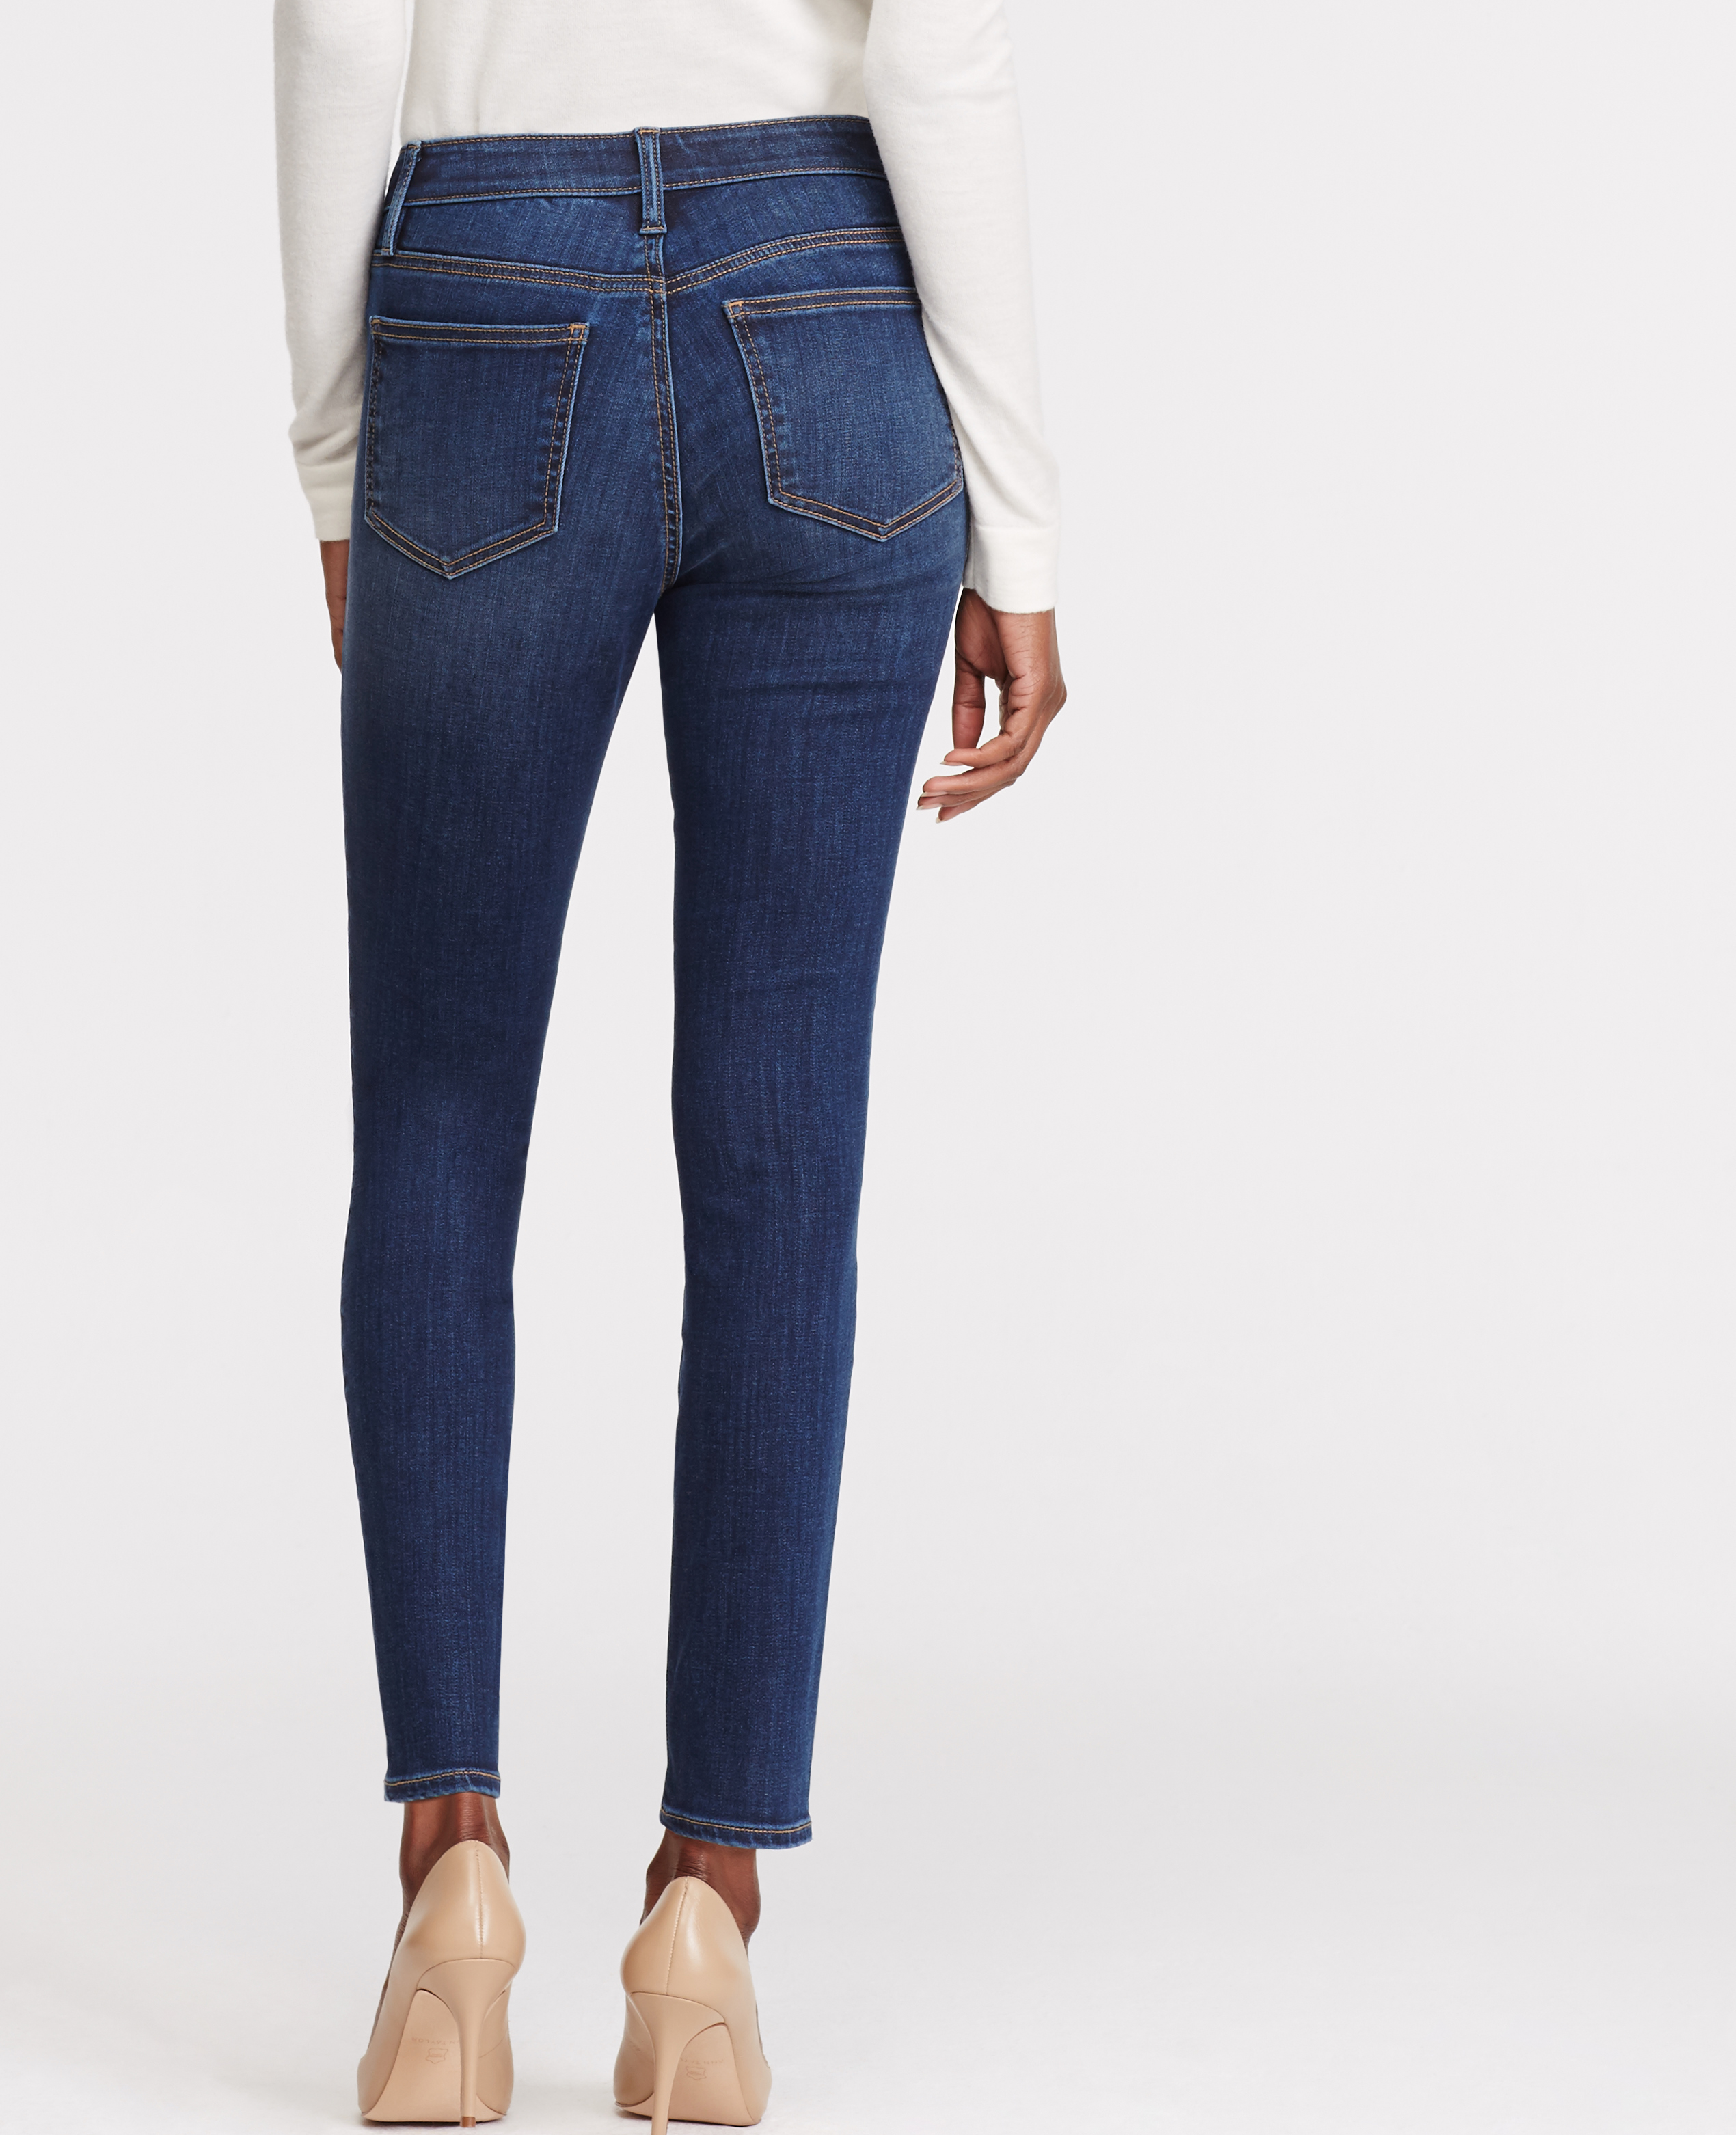 Watch video· For petite women (like Vazquez herself), she suggests going for a pair of jeans that are slim, high-waisted and cropped. The higher waist actually elongates your frame while the slim fit gives the.